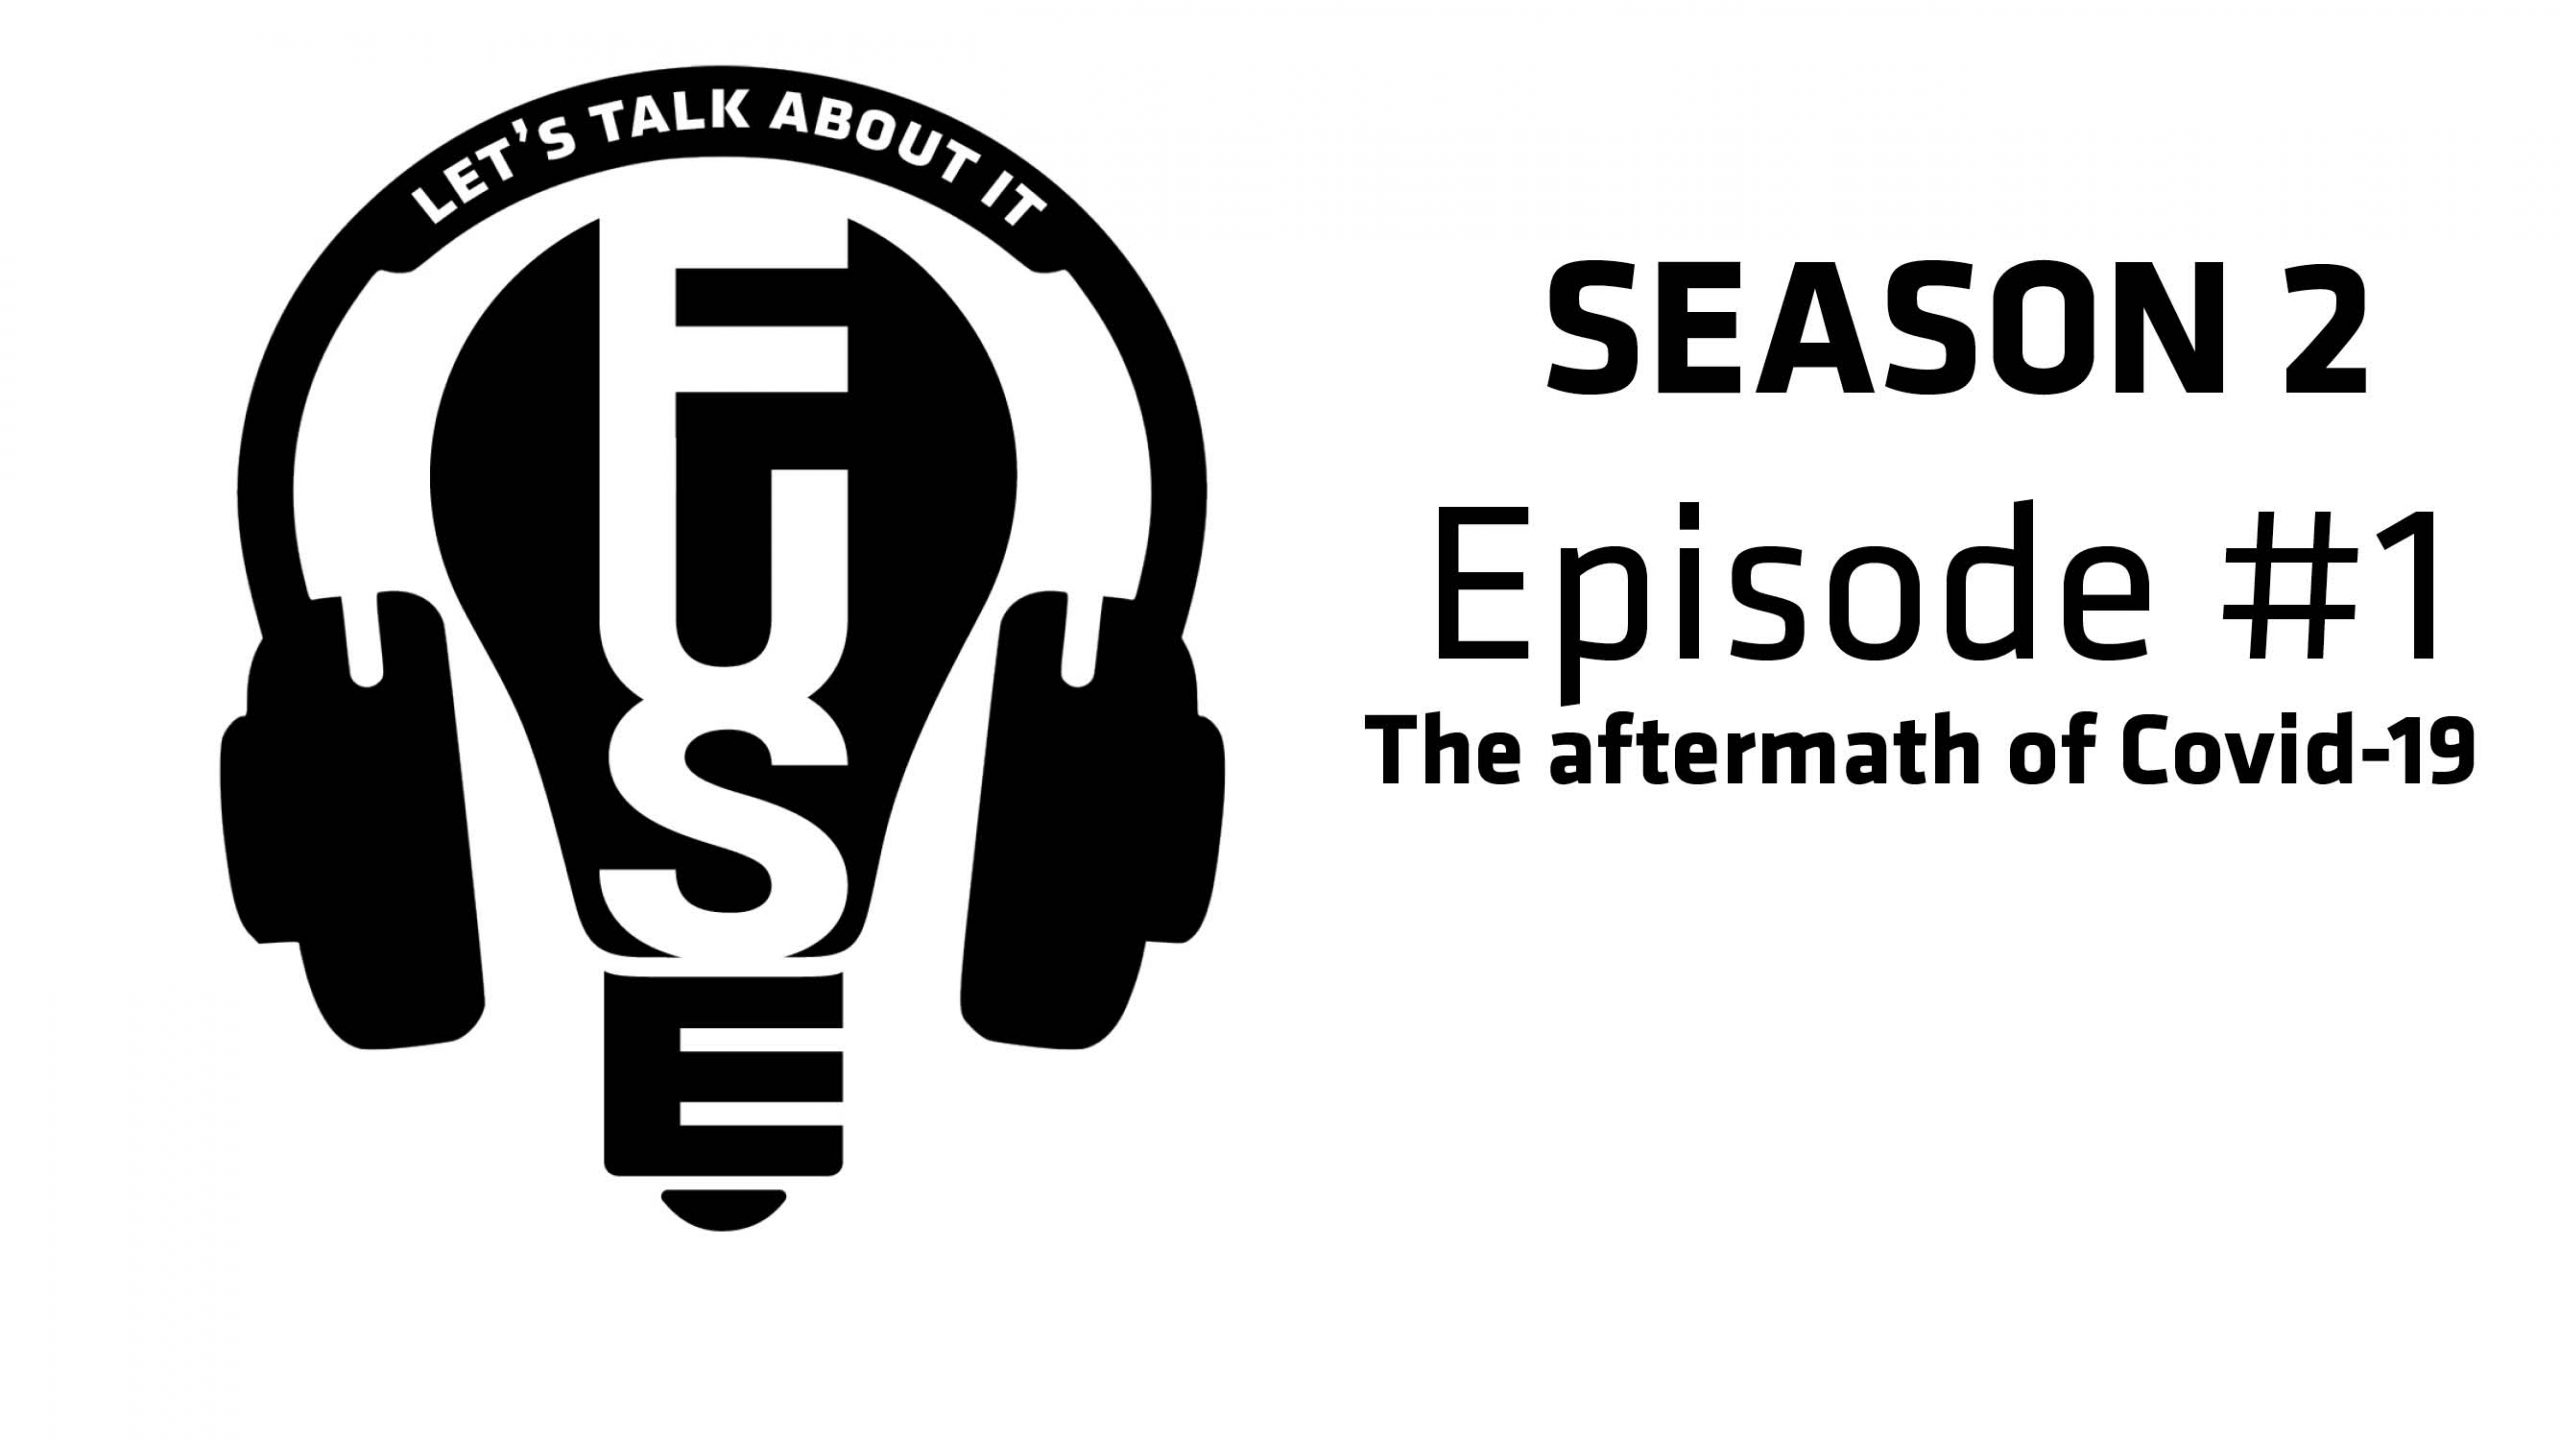 """""""Let's Talk About It"""" Season 2 Episode 1 - The aftermath of Covid-19."""